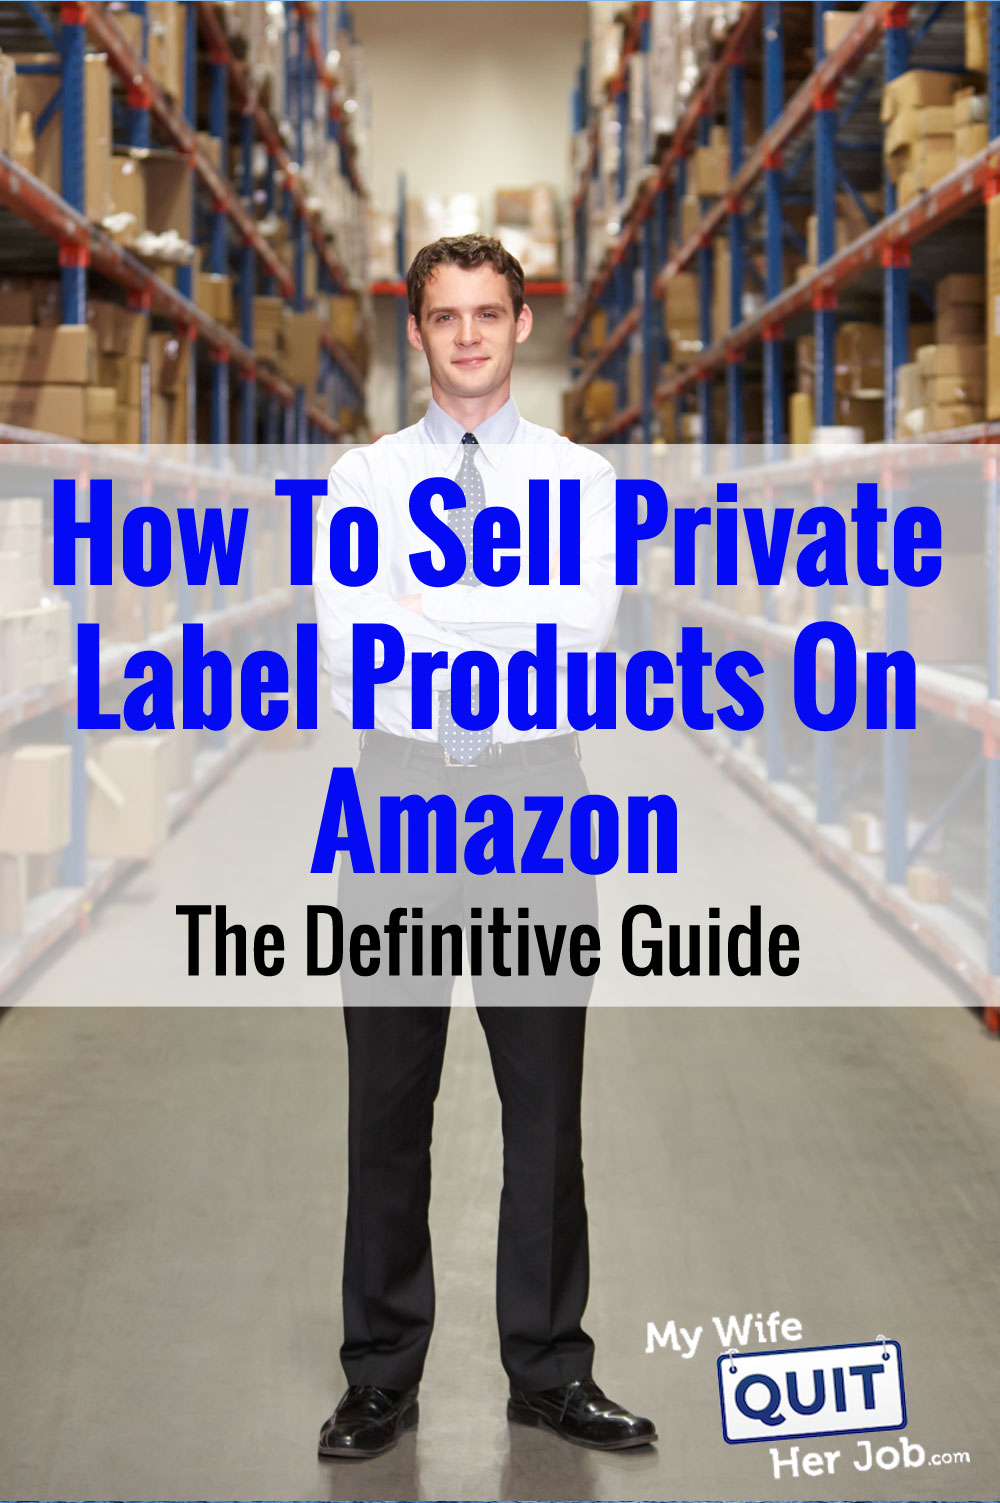 How To Sell Private Label Products On Amazon - The Definitive Guide